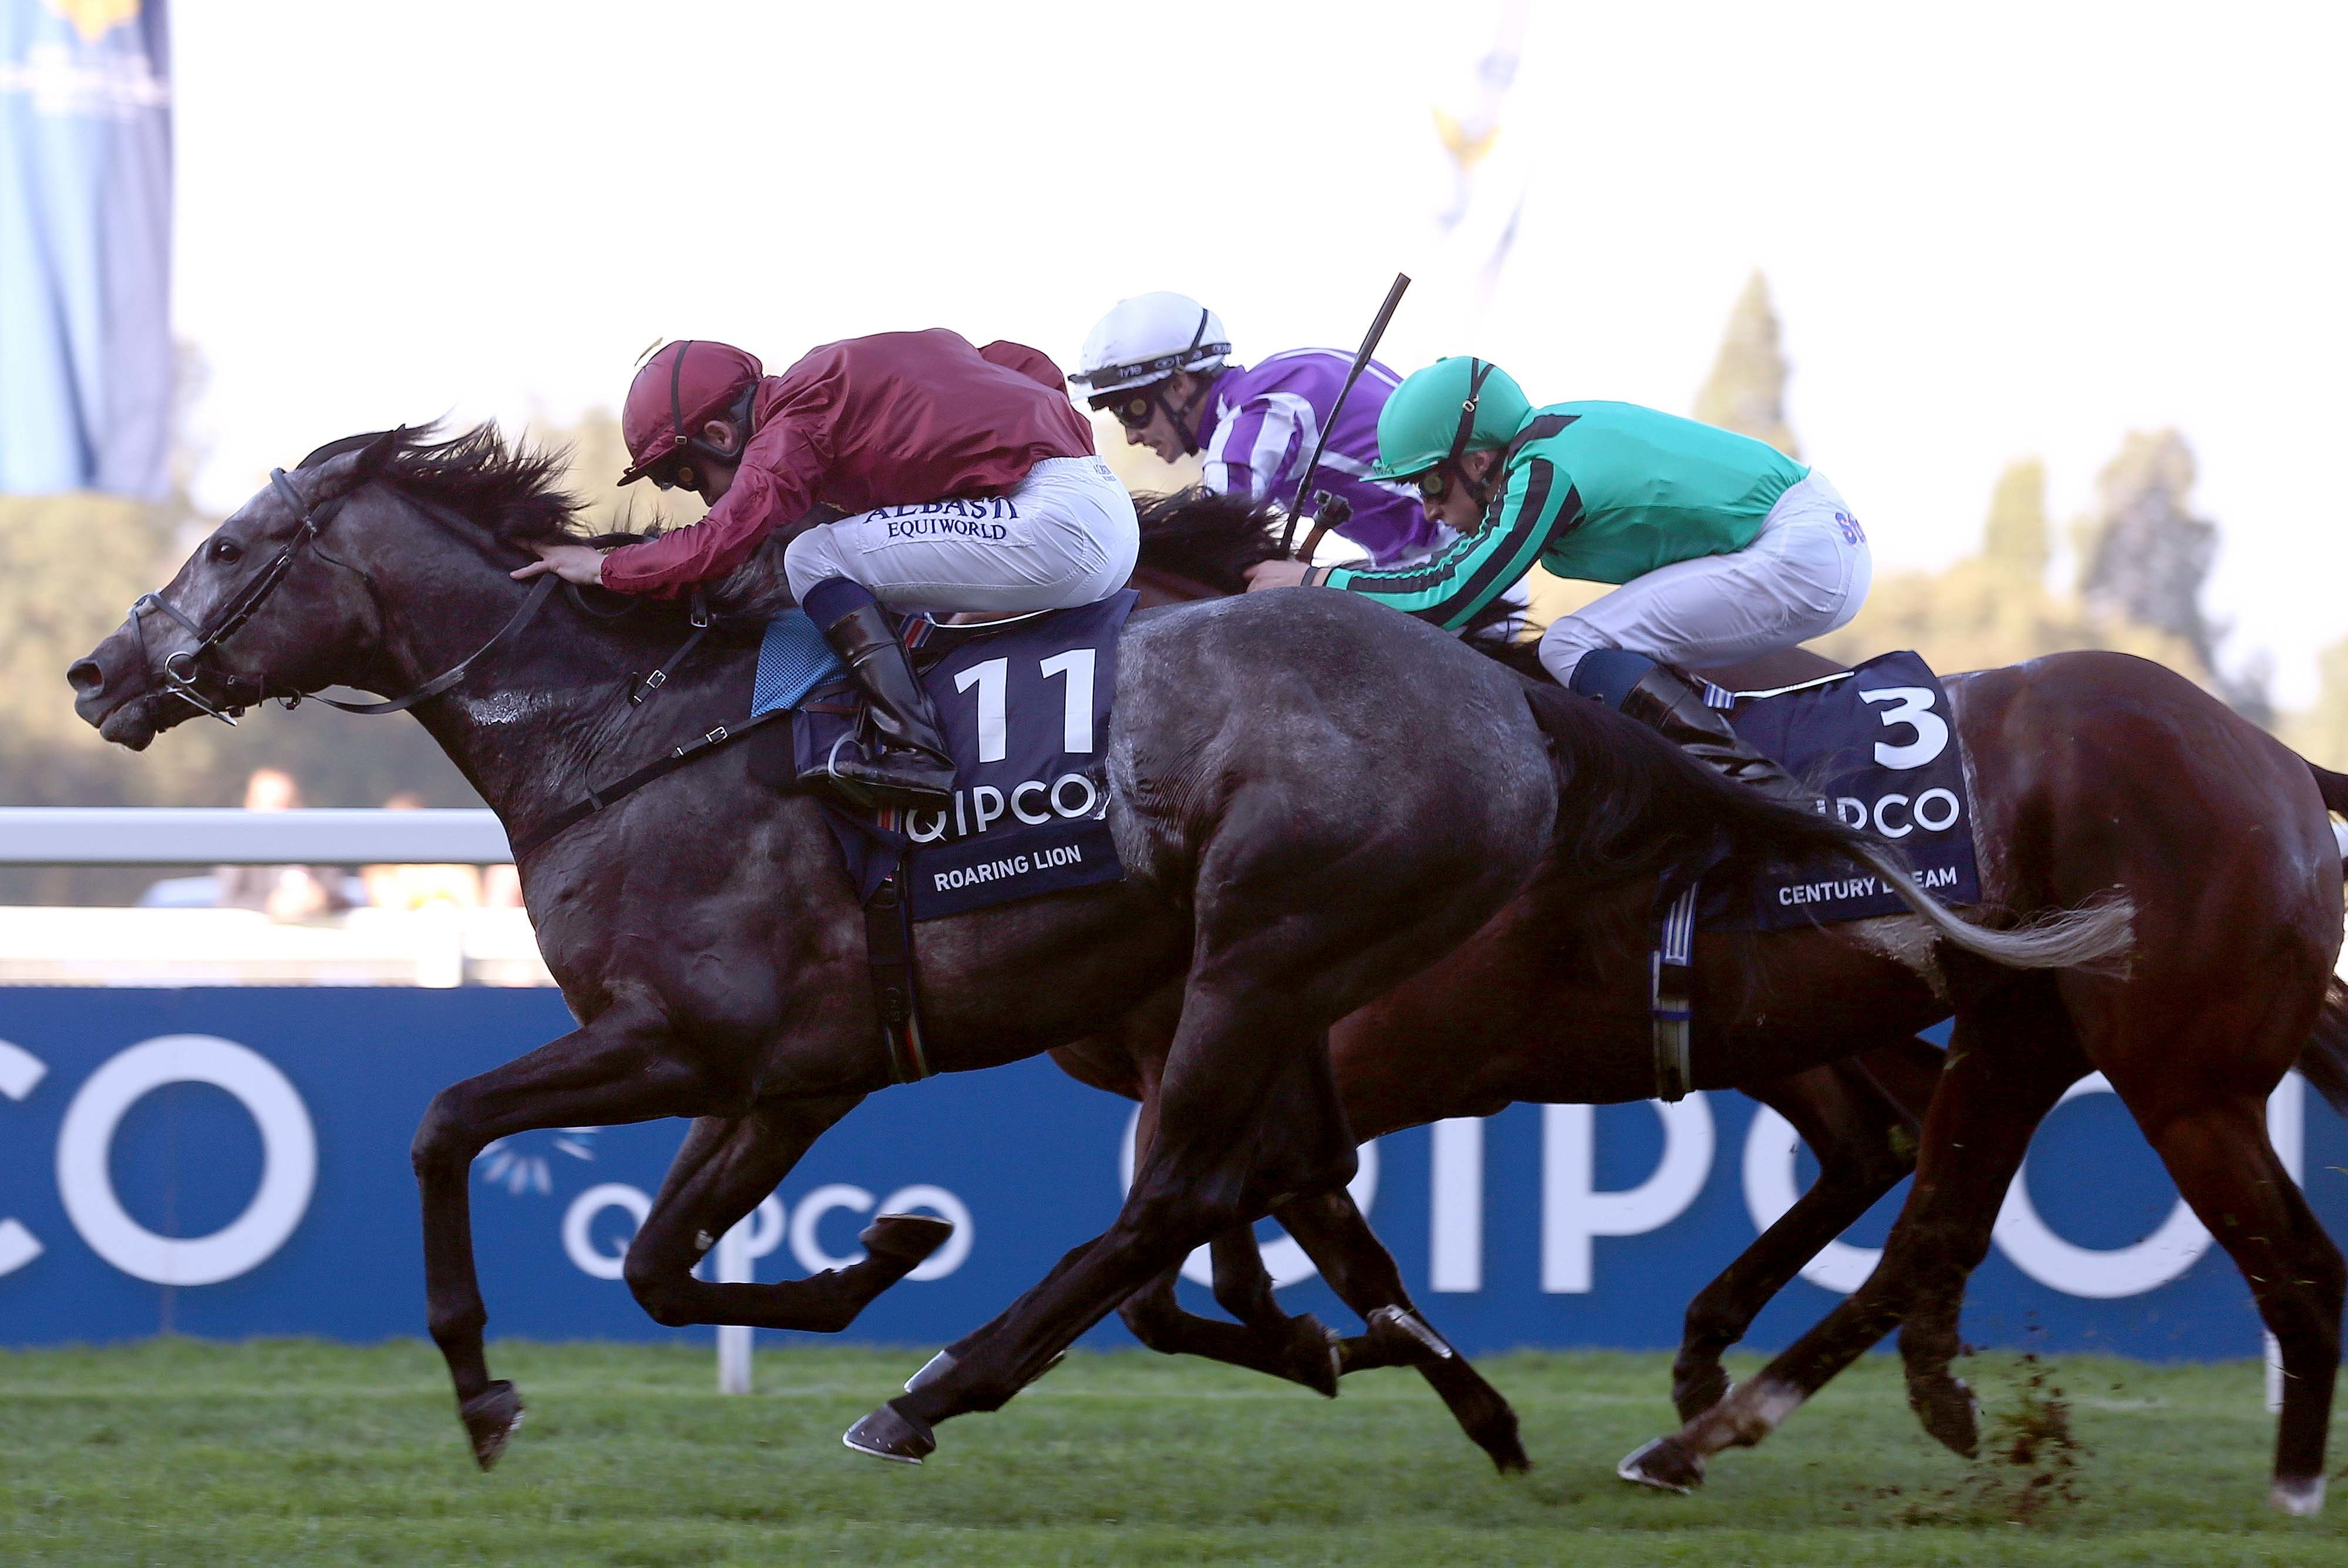 Cartier Awards : Roaring Lion devance Enable à la photo